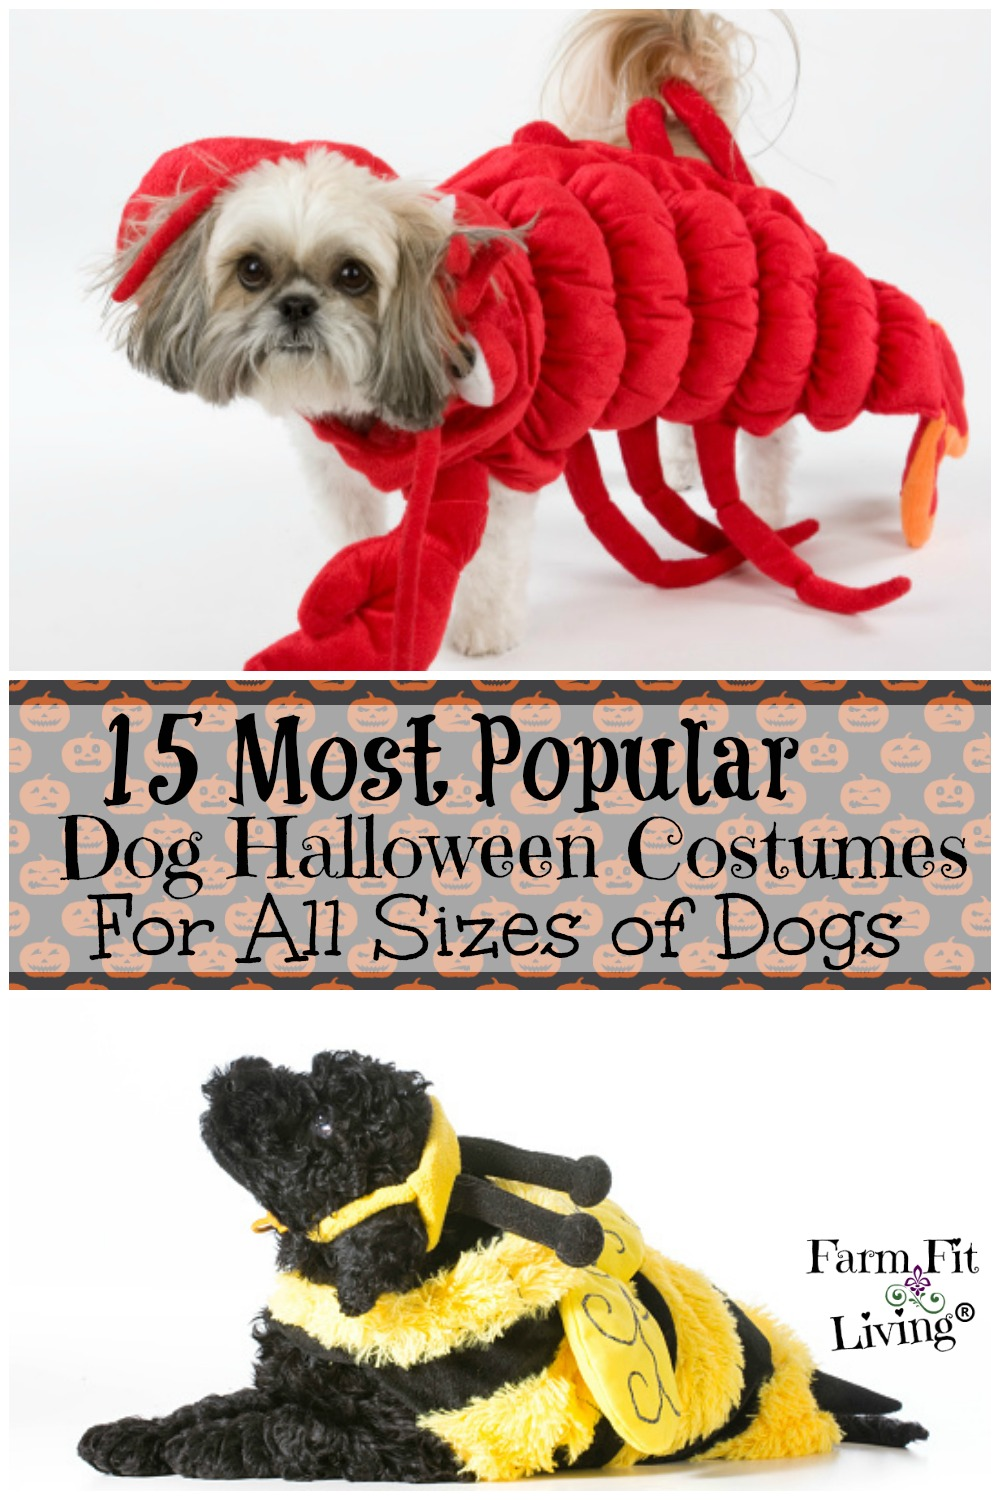 Most Popular Dog Halloween Costumes